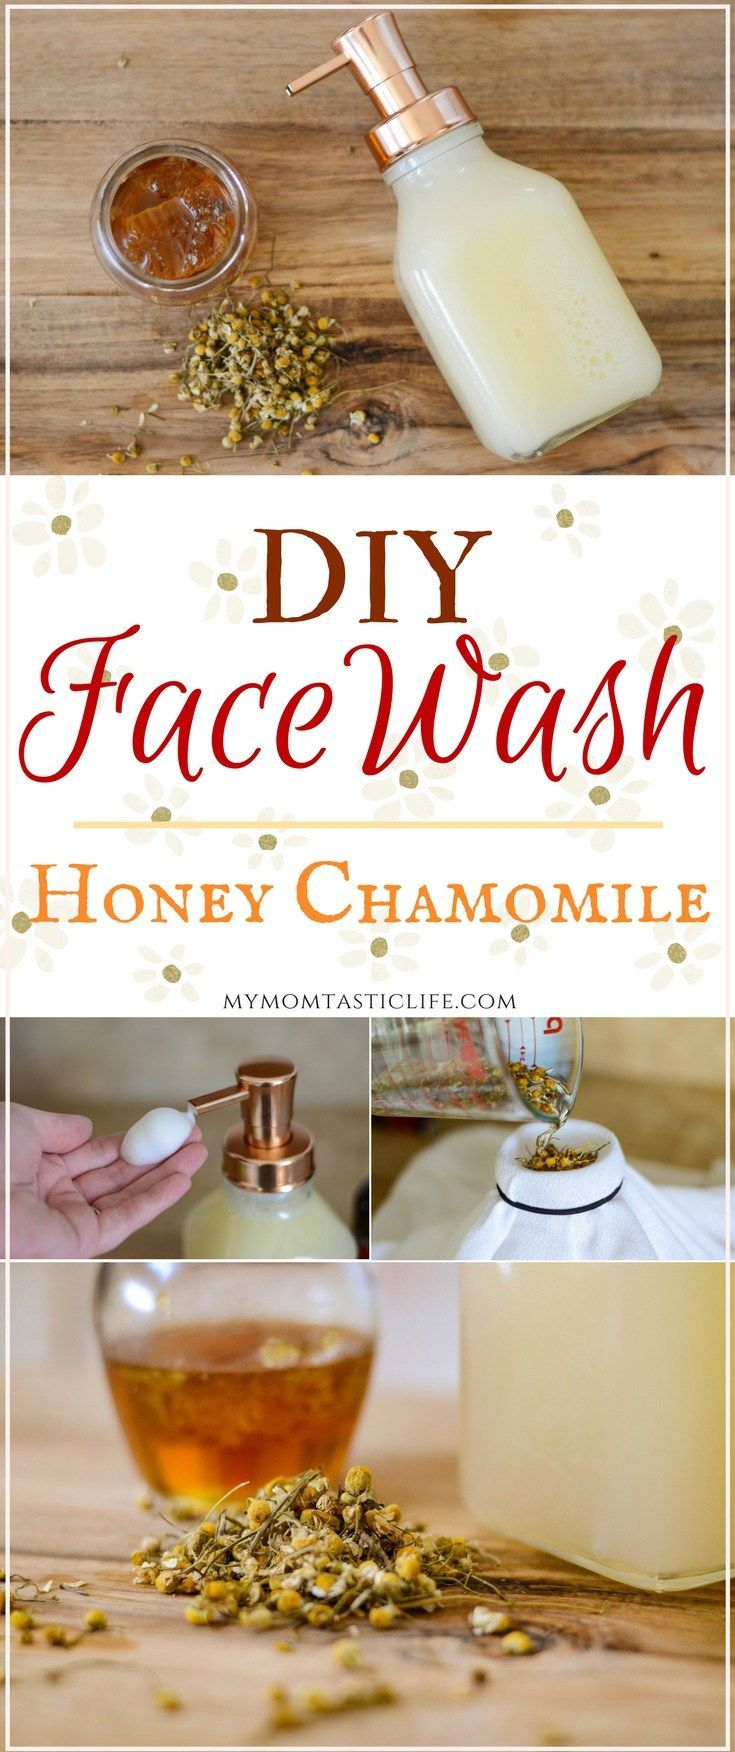 DIY Face Wash – Honey Chamomile For Sensitive Skin and Anti-Aging